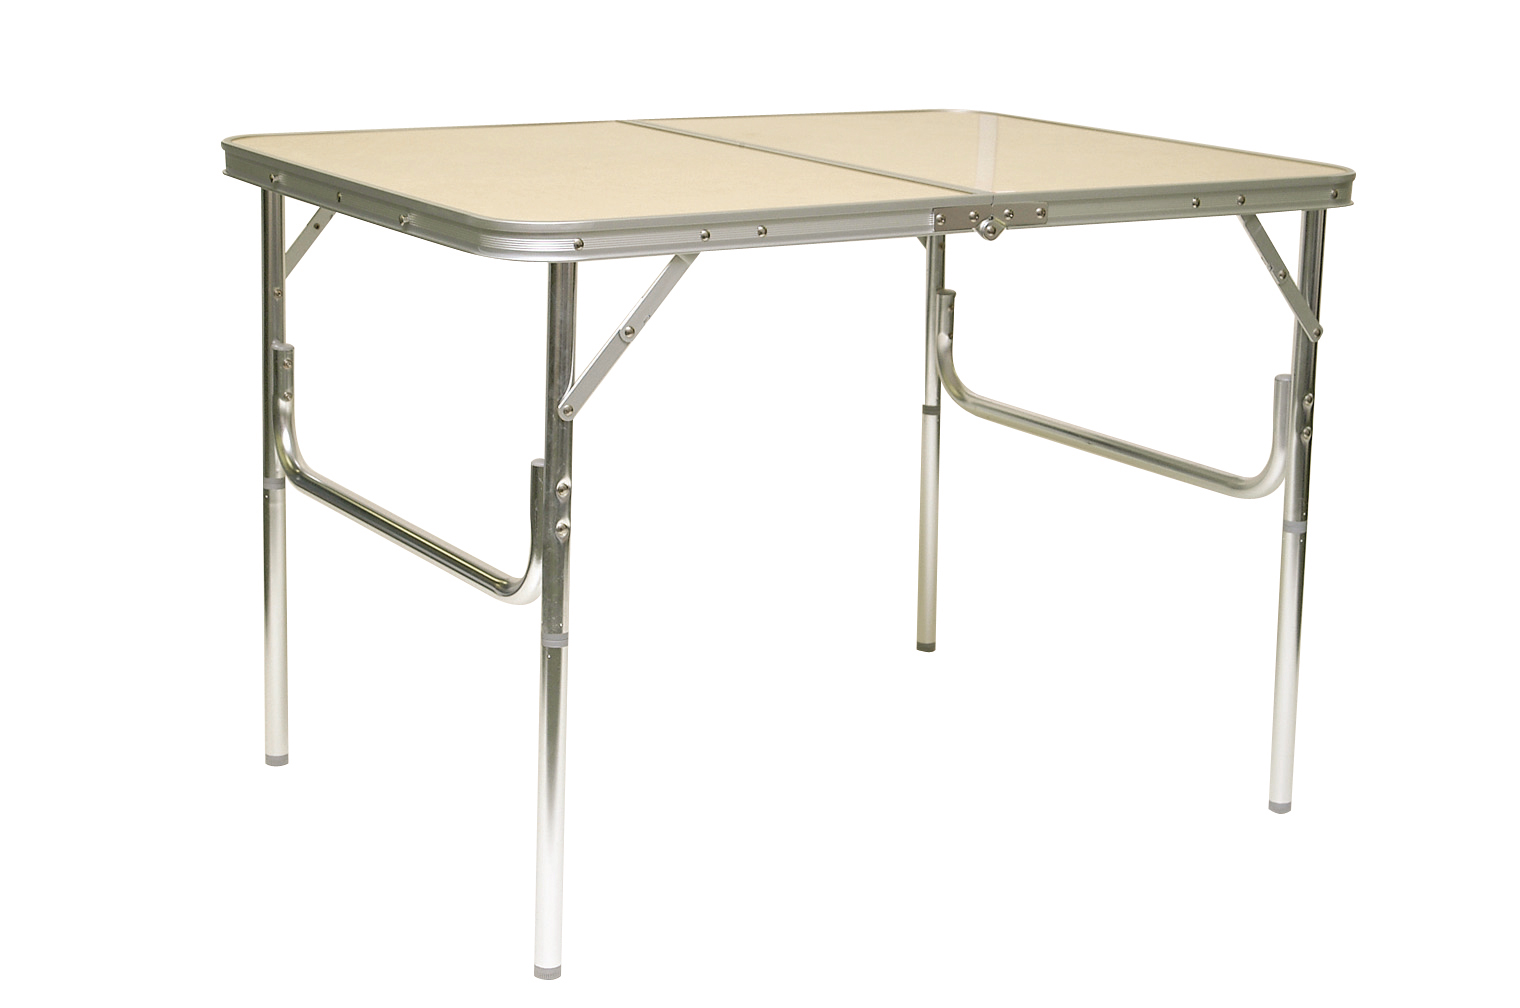 Folding Table Folding Table For Camper Bing Images